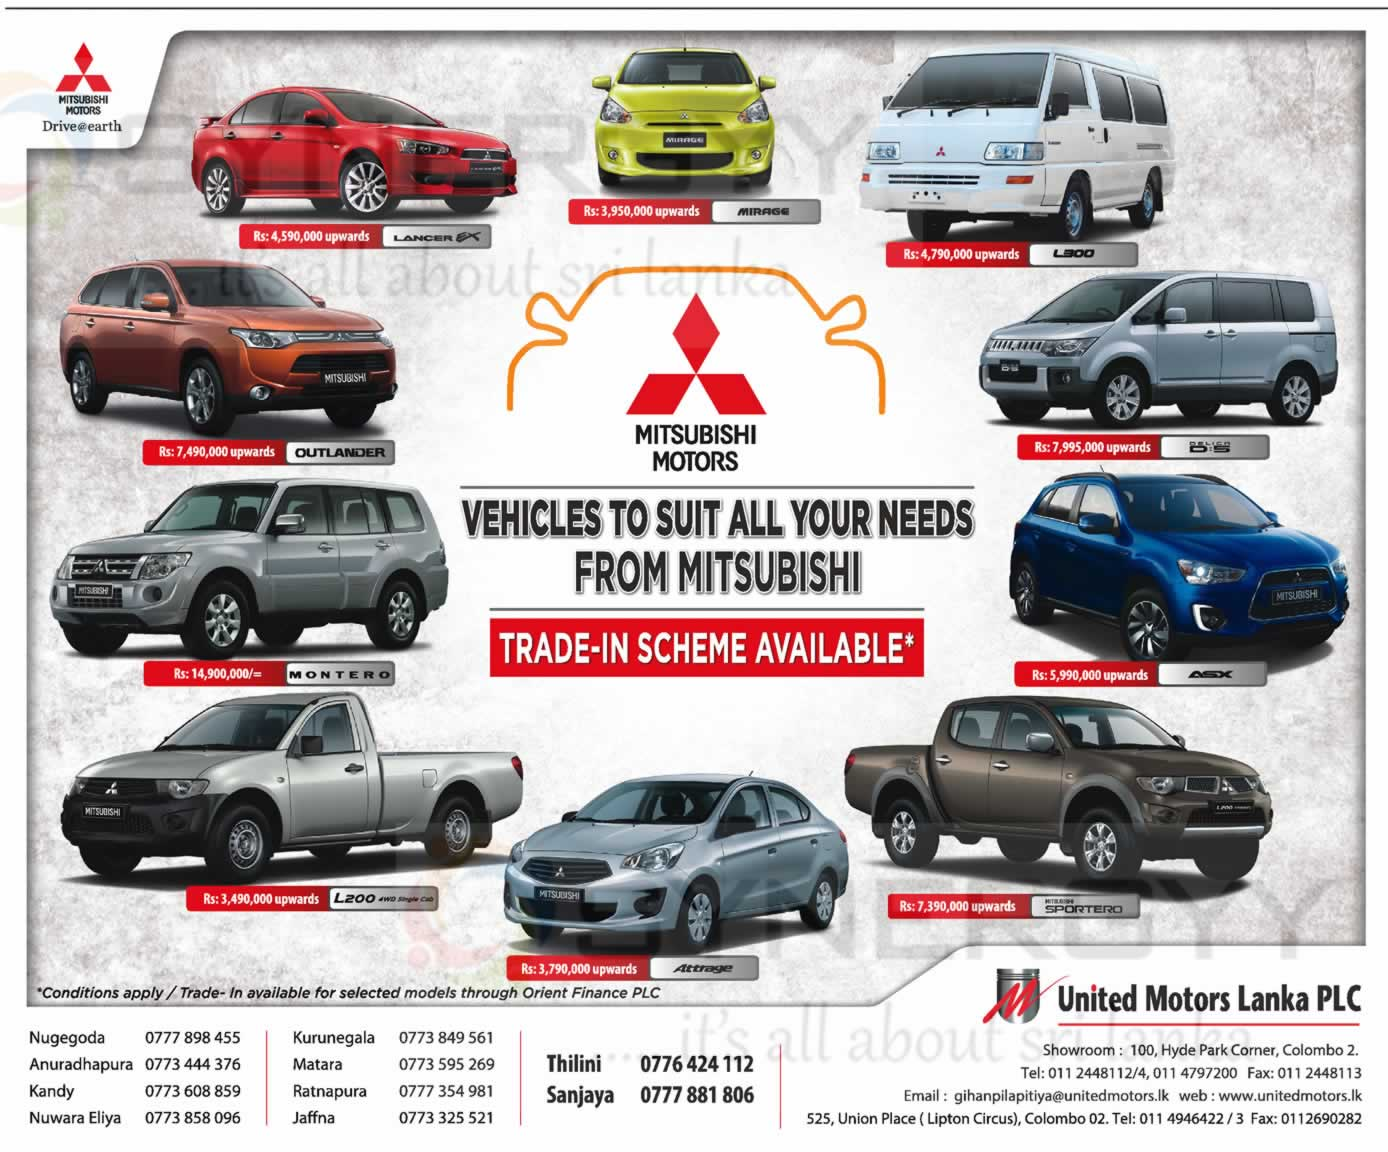 Mitsubishi Brand New car, Van and SUV Prices in Srilanka – Updated